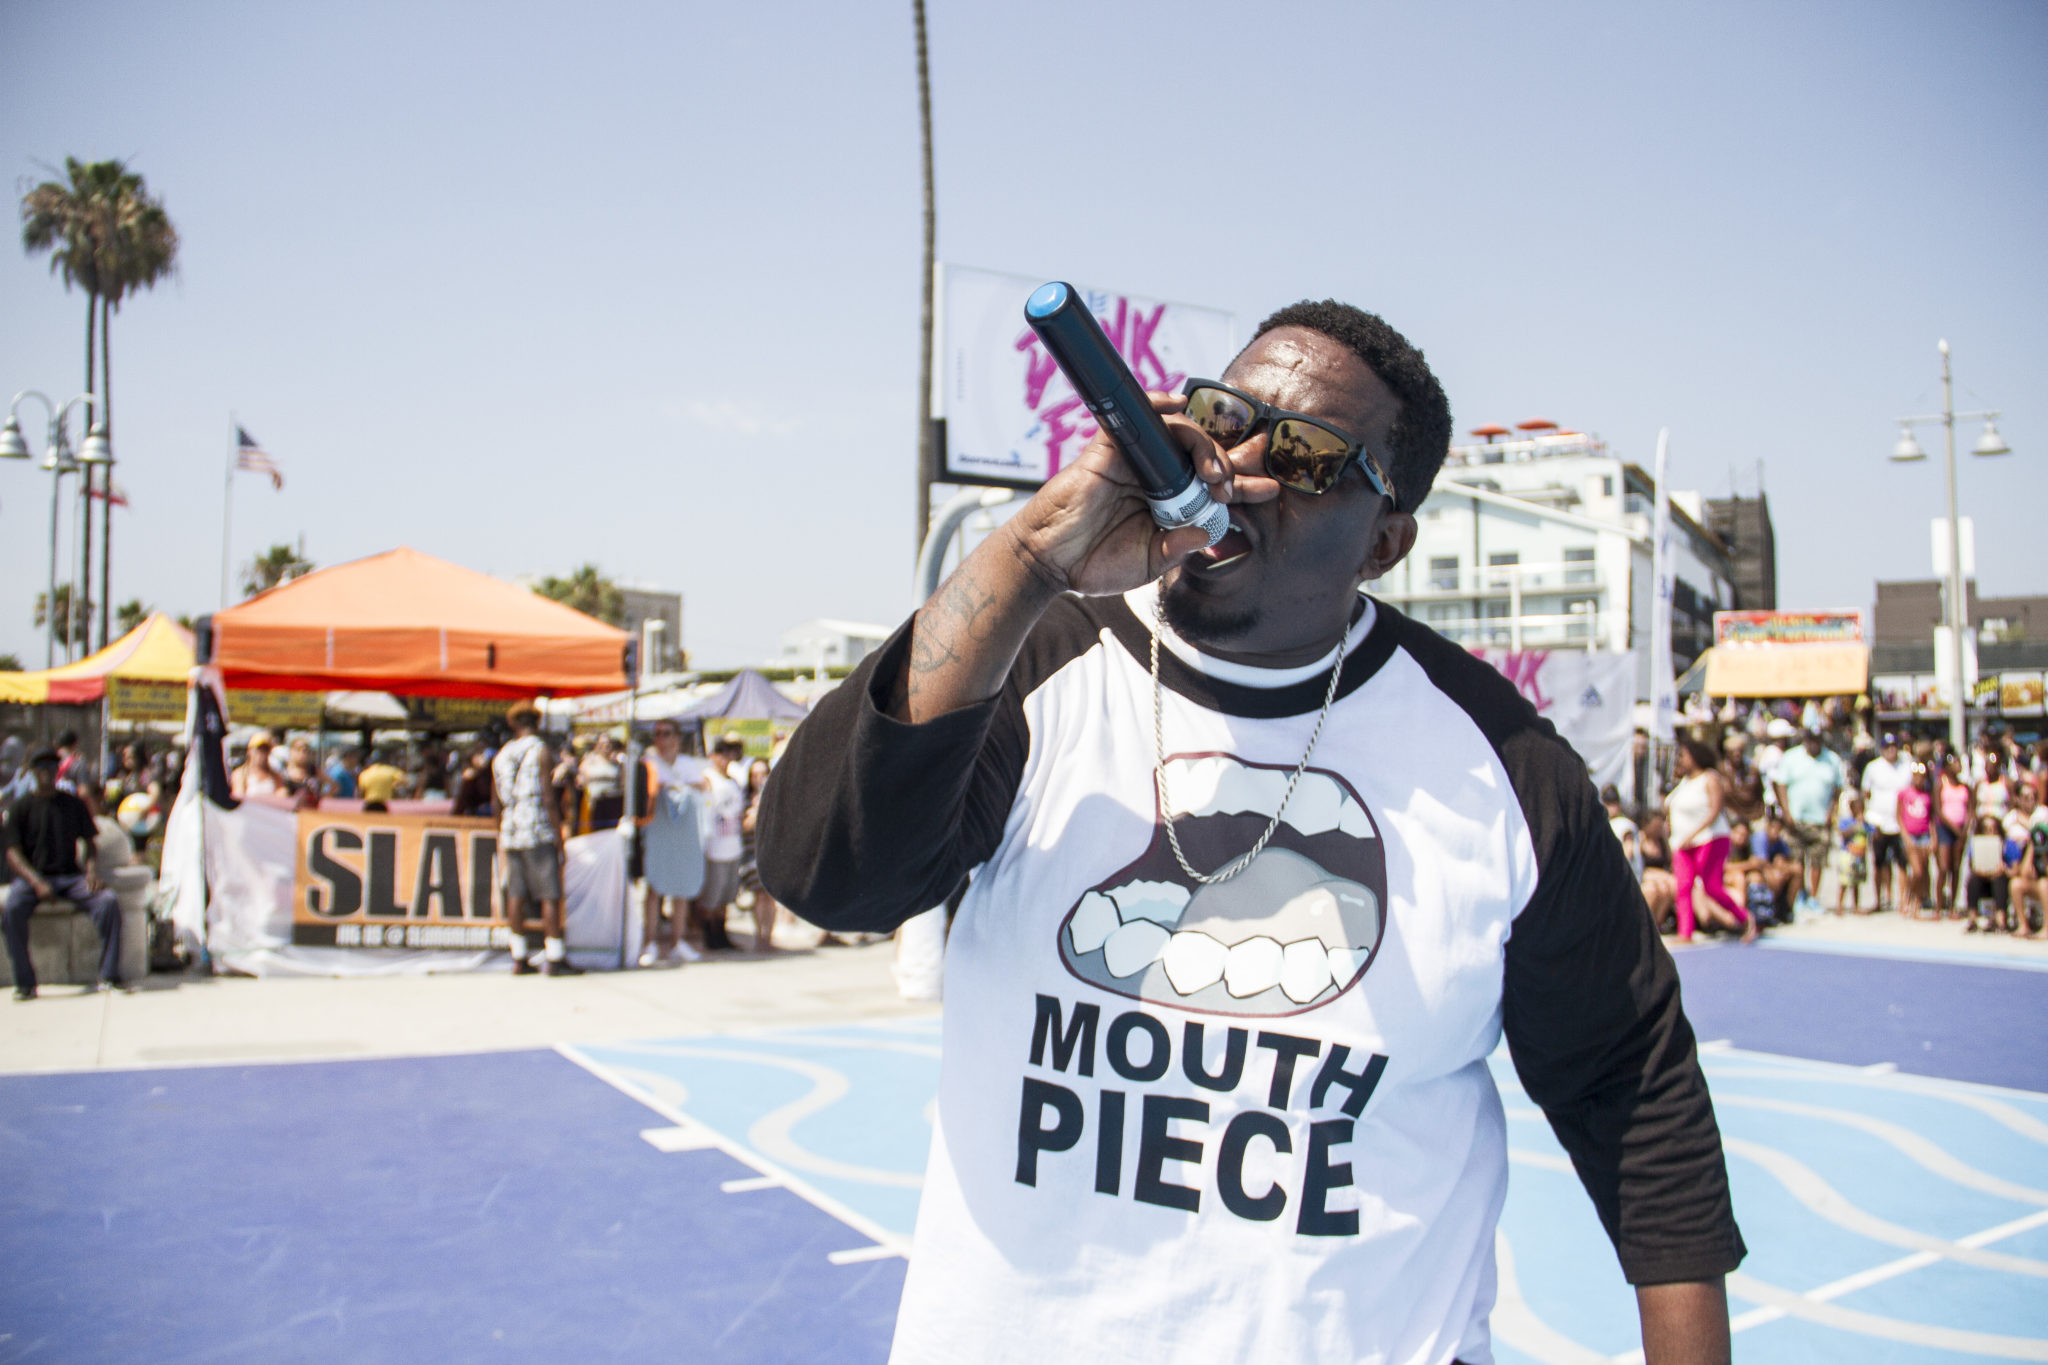 VBL Q&A of the Day: The Voice of Venice Beach AKA Mouthpiece